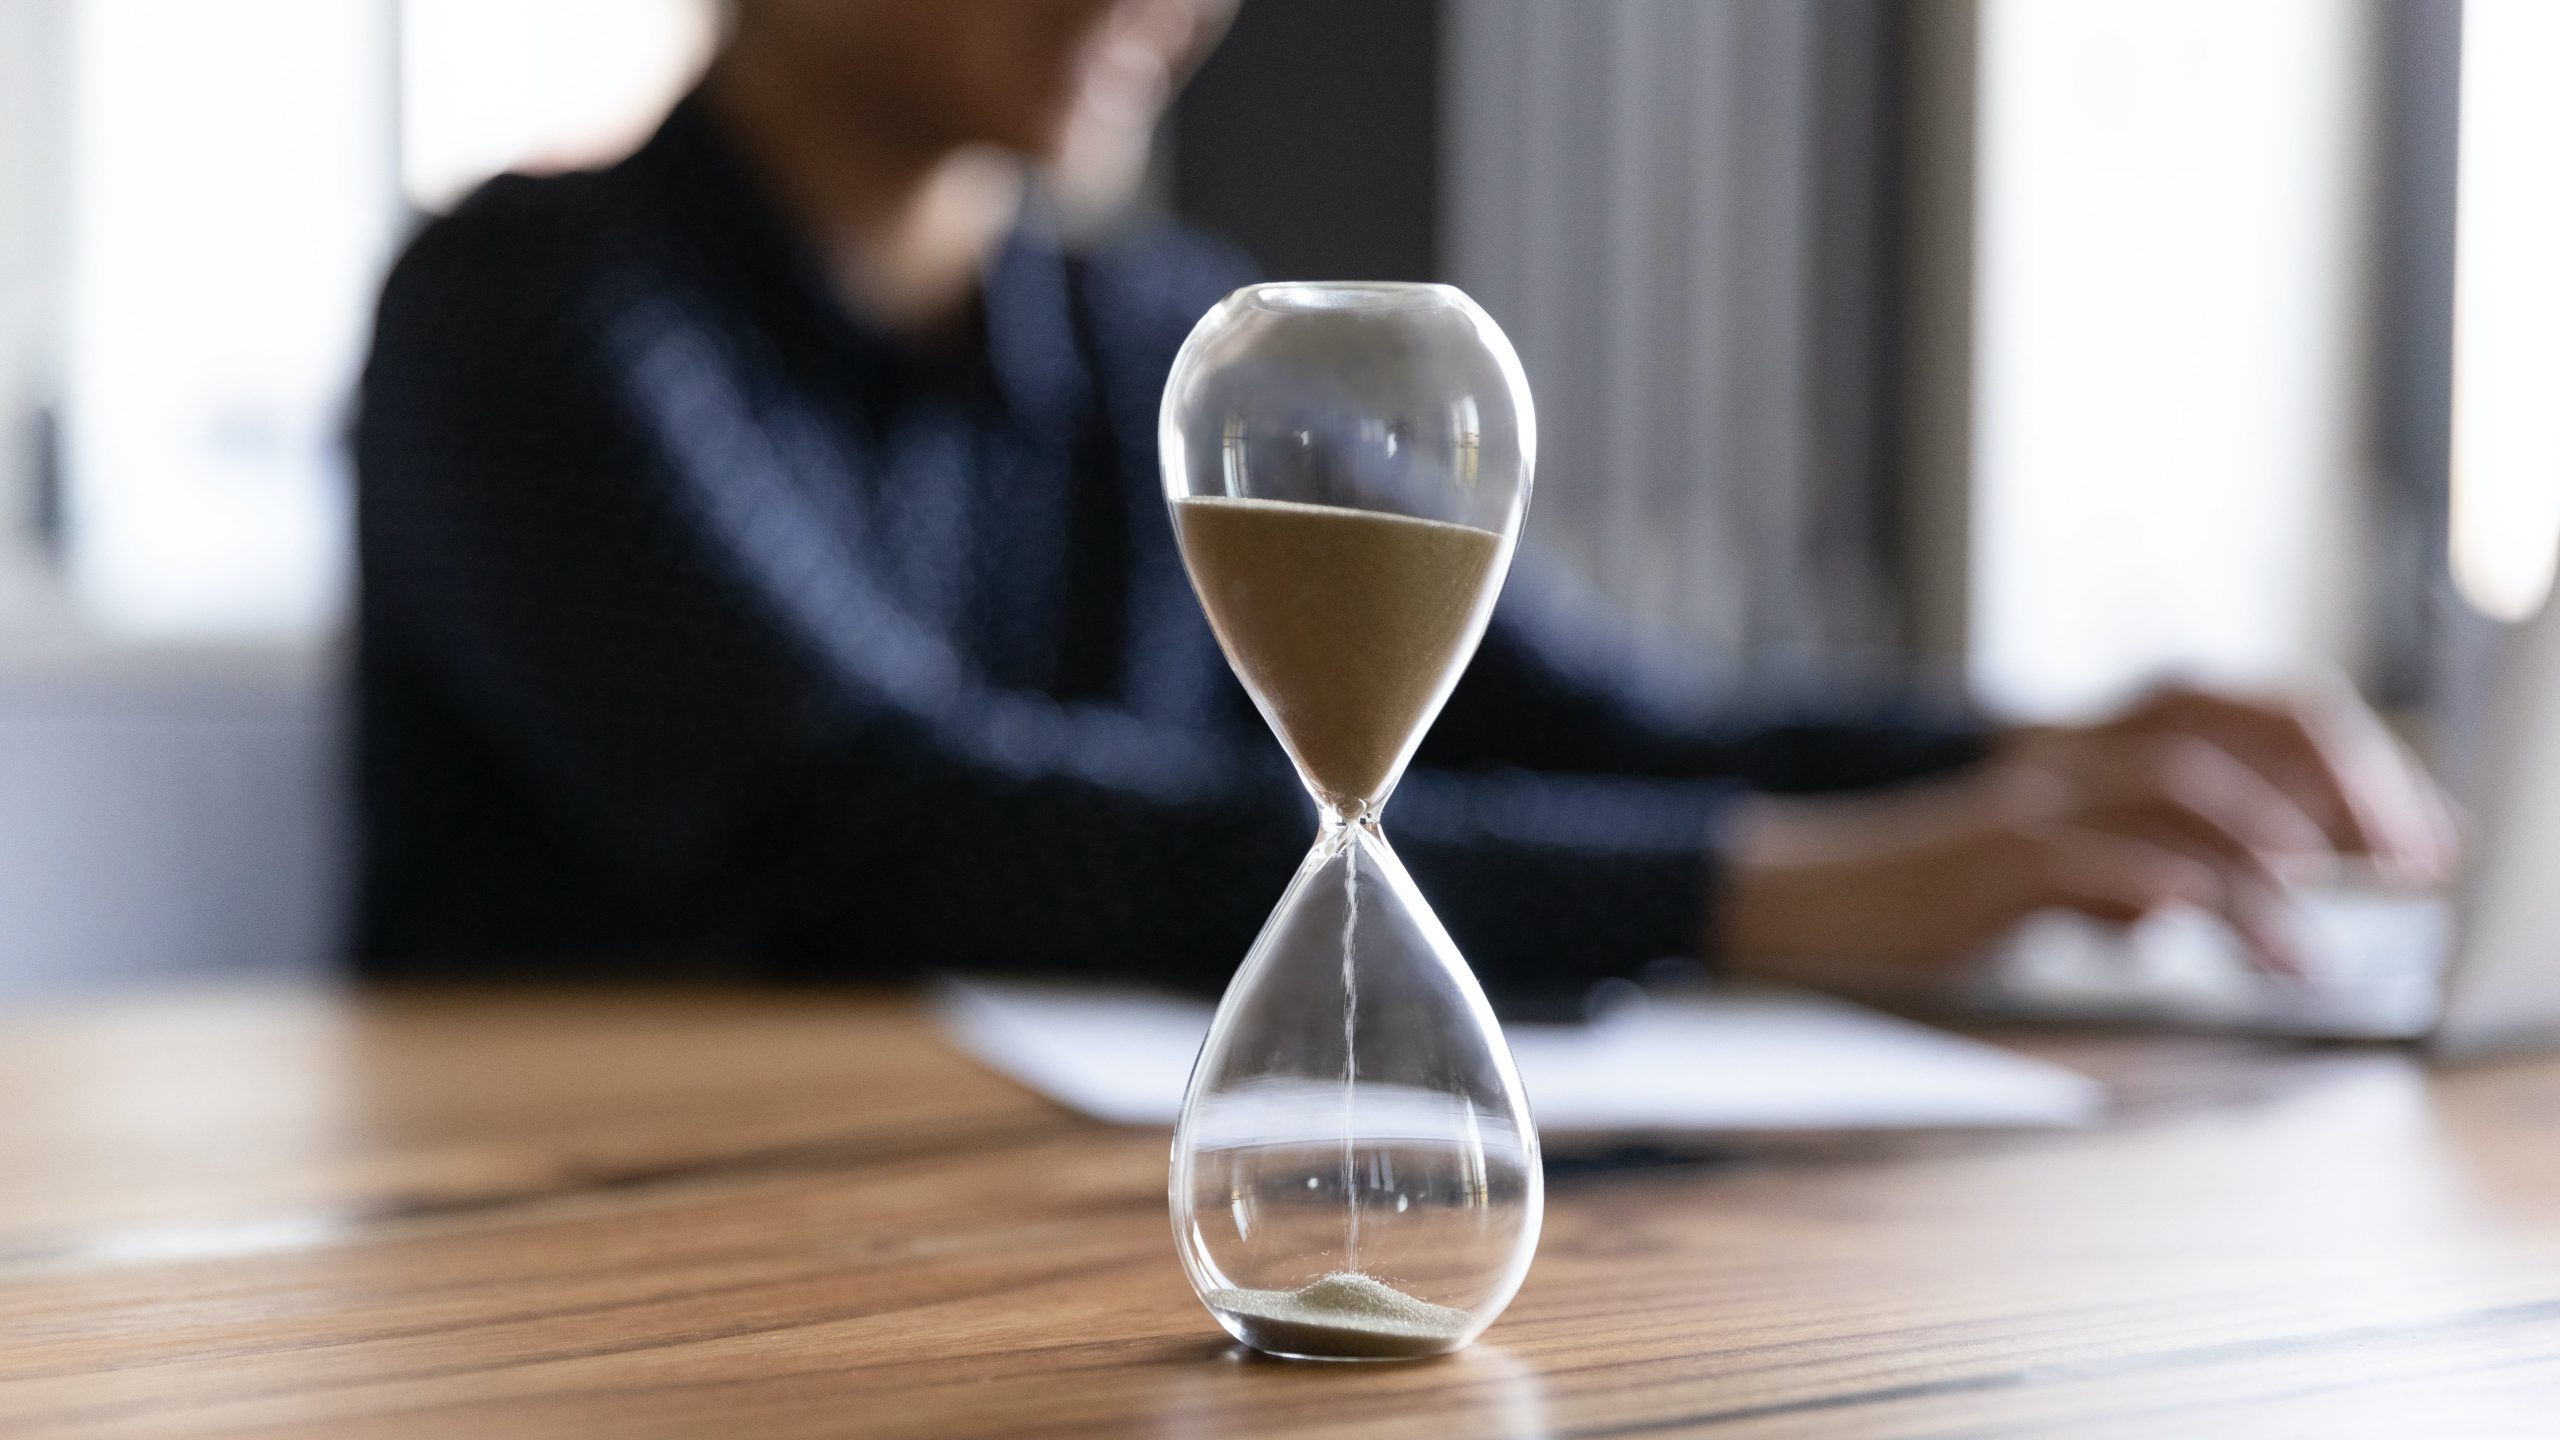 Hourglass on desk, less time concept